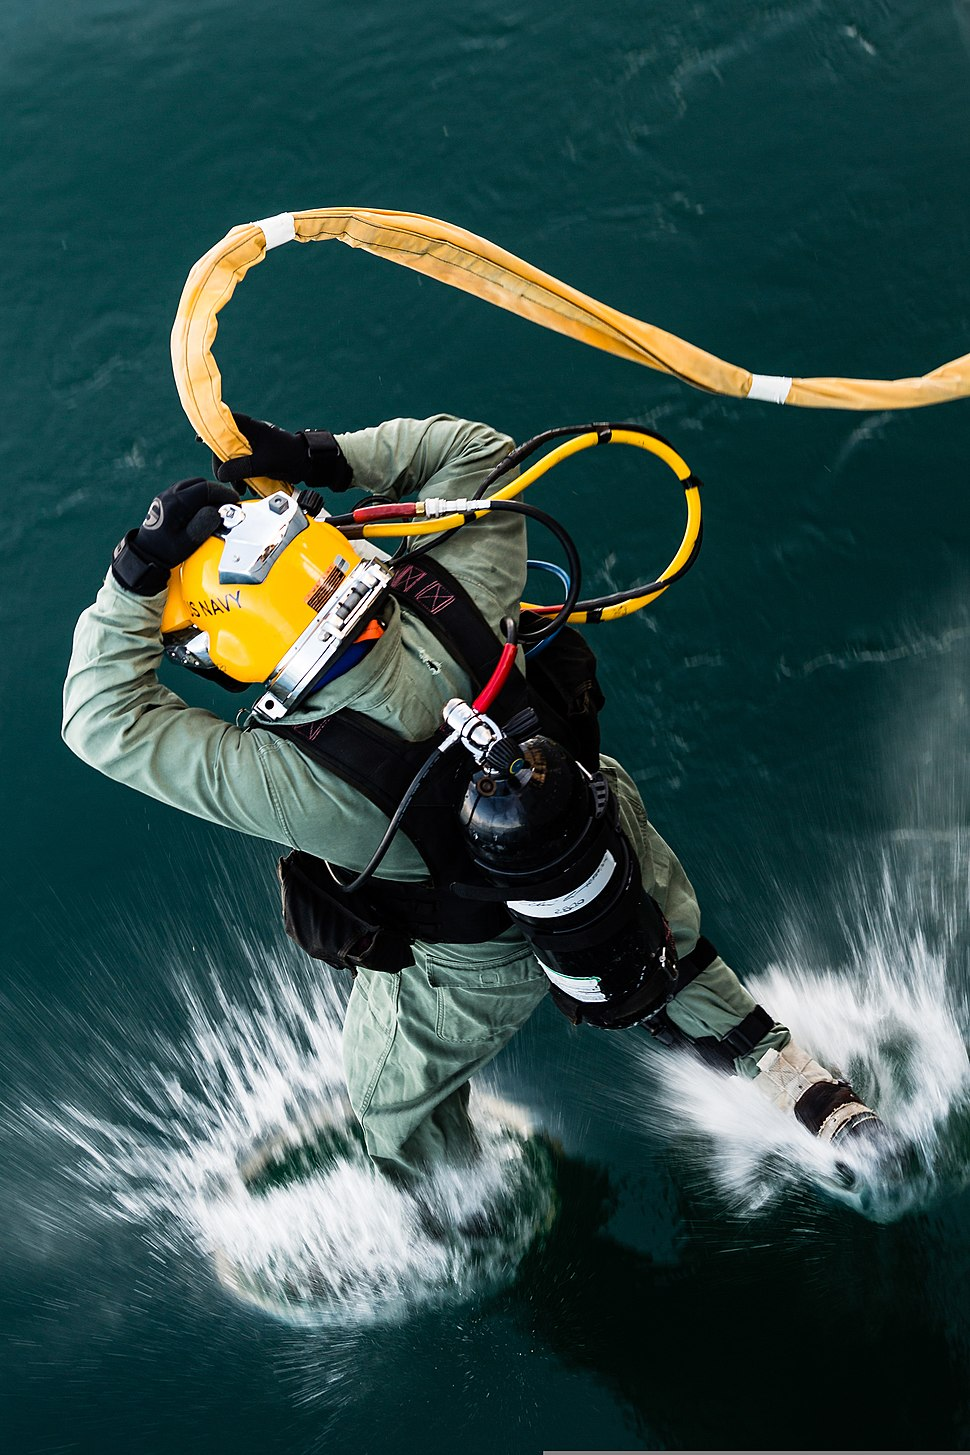 U.S. Navy Diver enters the water during a training evolution at the Naval Diving and Salvage Training Center 140218-N-IC111-156